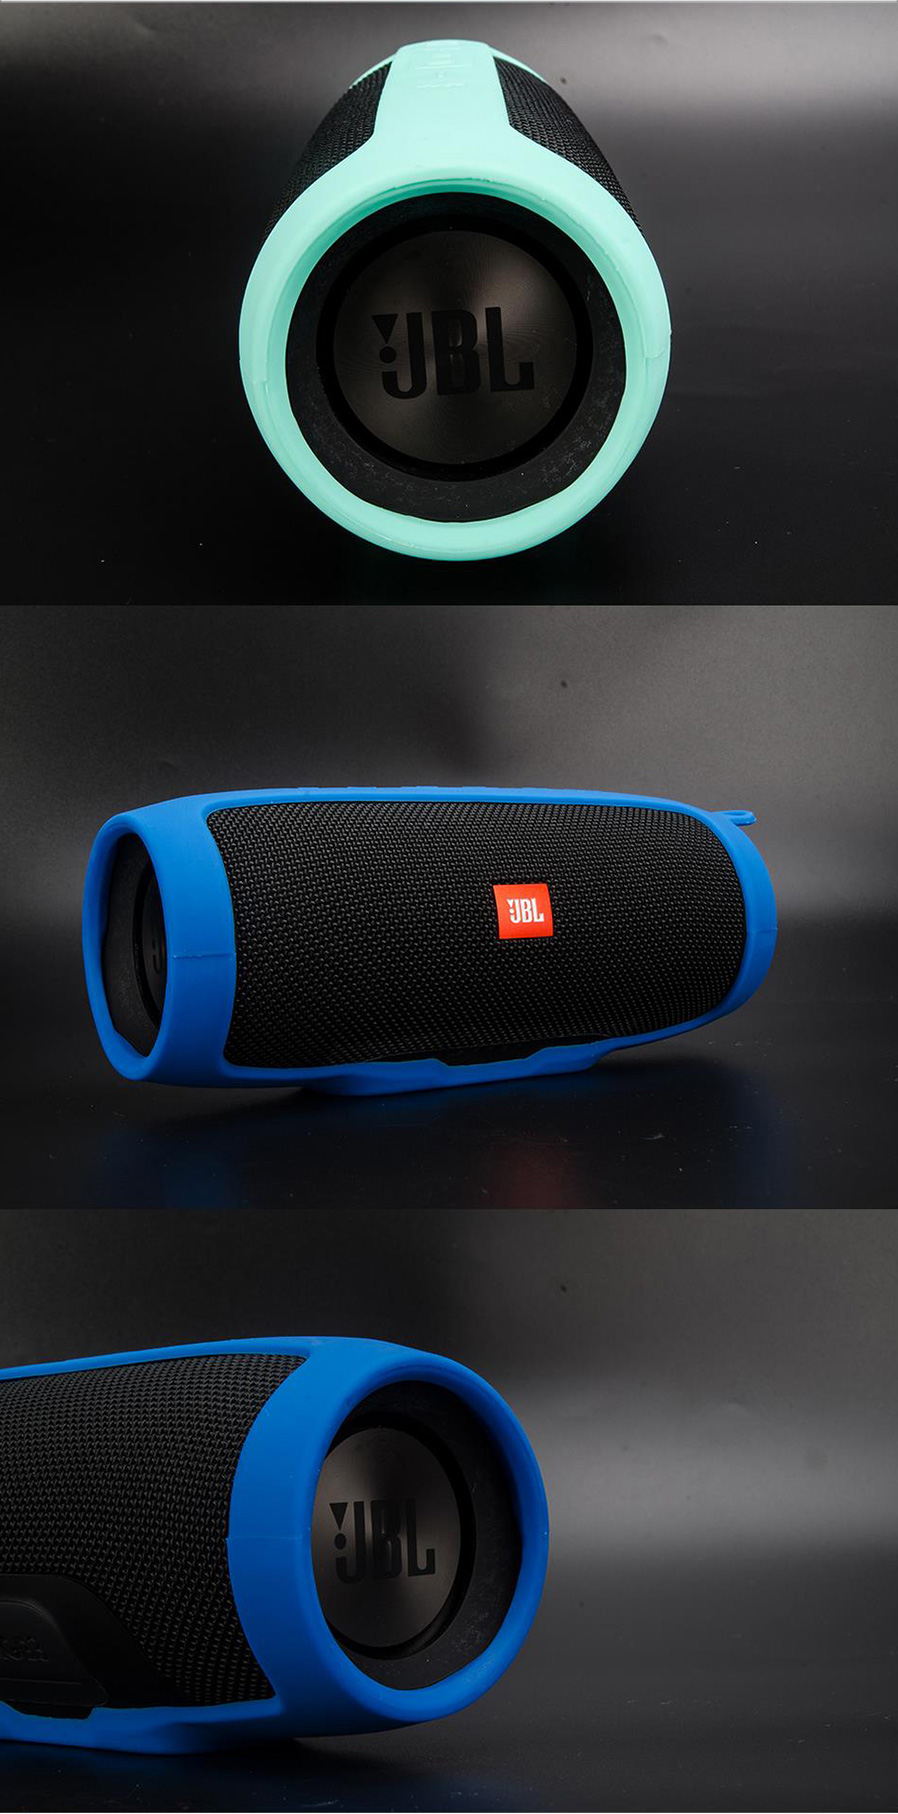 Soft Silicone Case Cover For Jbl Charge 3 Bluetooth Speaker Free Charger 8plus New Mini Portable This Lets You To Carry It Your Backpack Bike And More The Has Customized Press Button Icons Volume Up Down Power On Off